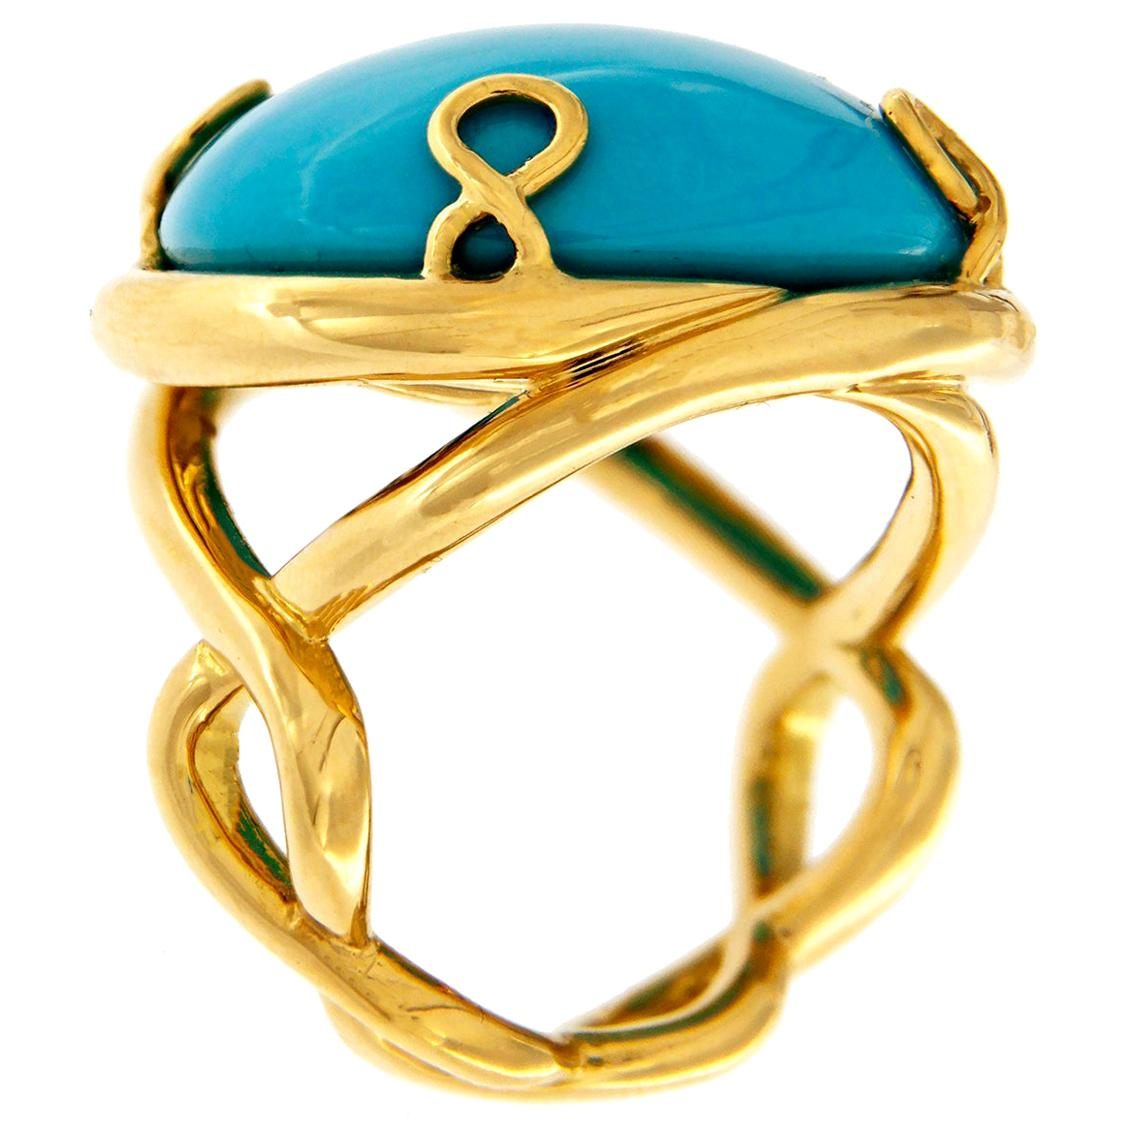 Valentin Magro Helix Round Turquoise Gold Ring